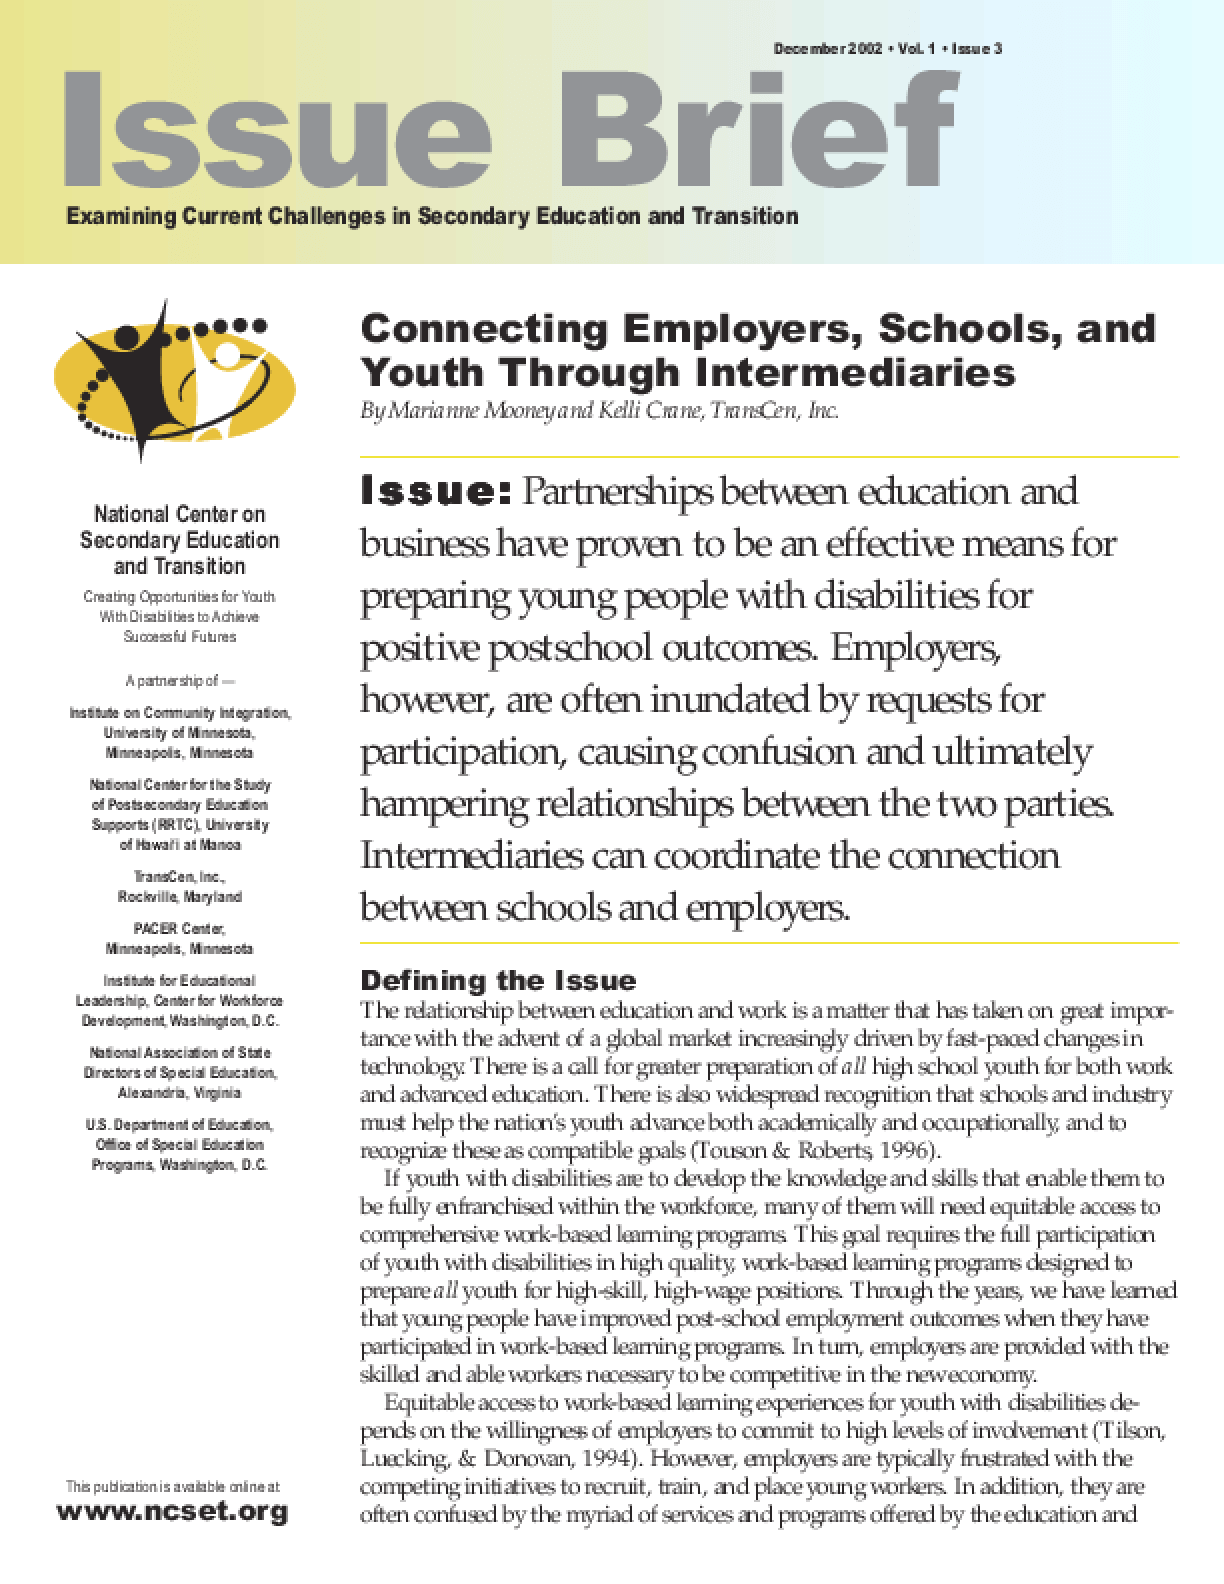 Connecting Employers, Schools, and Youth Through Intermediaries